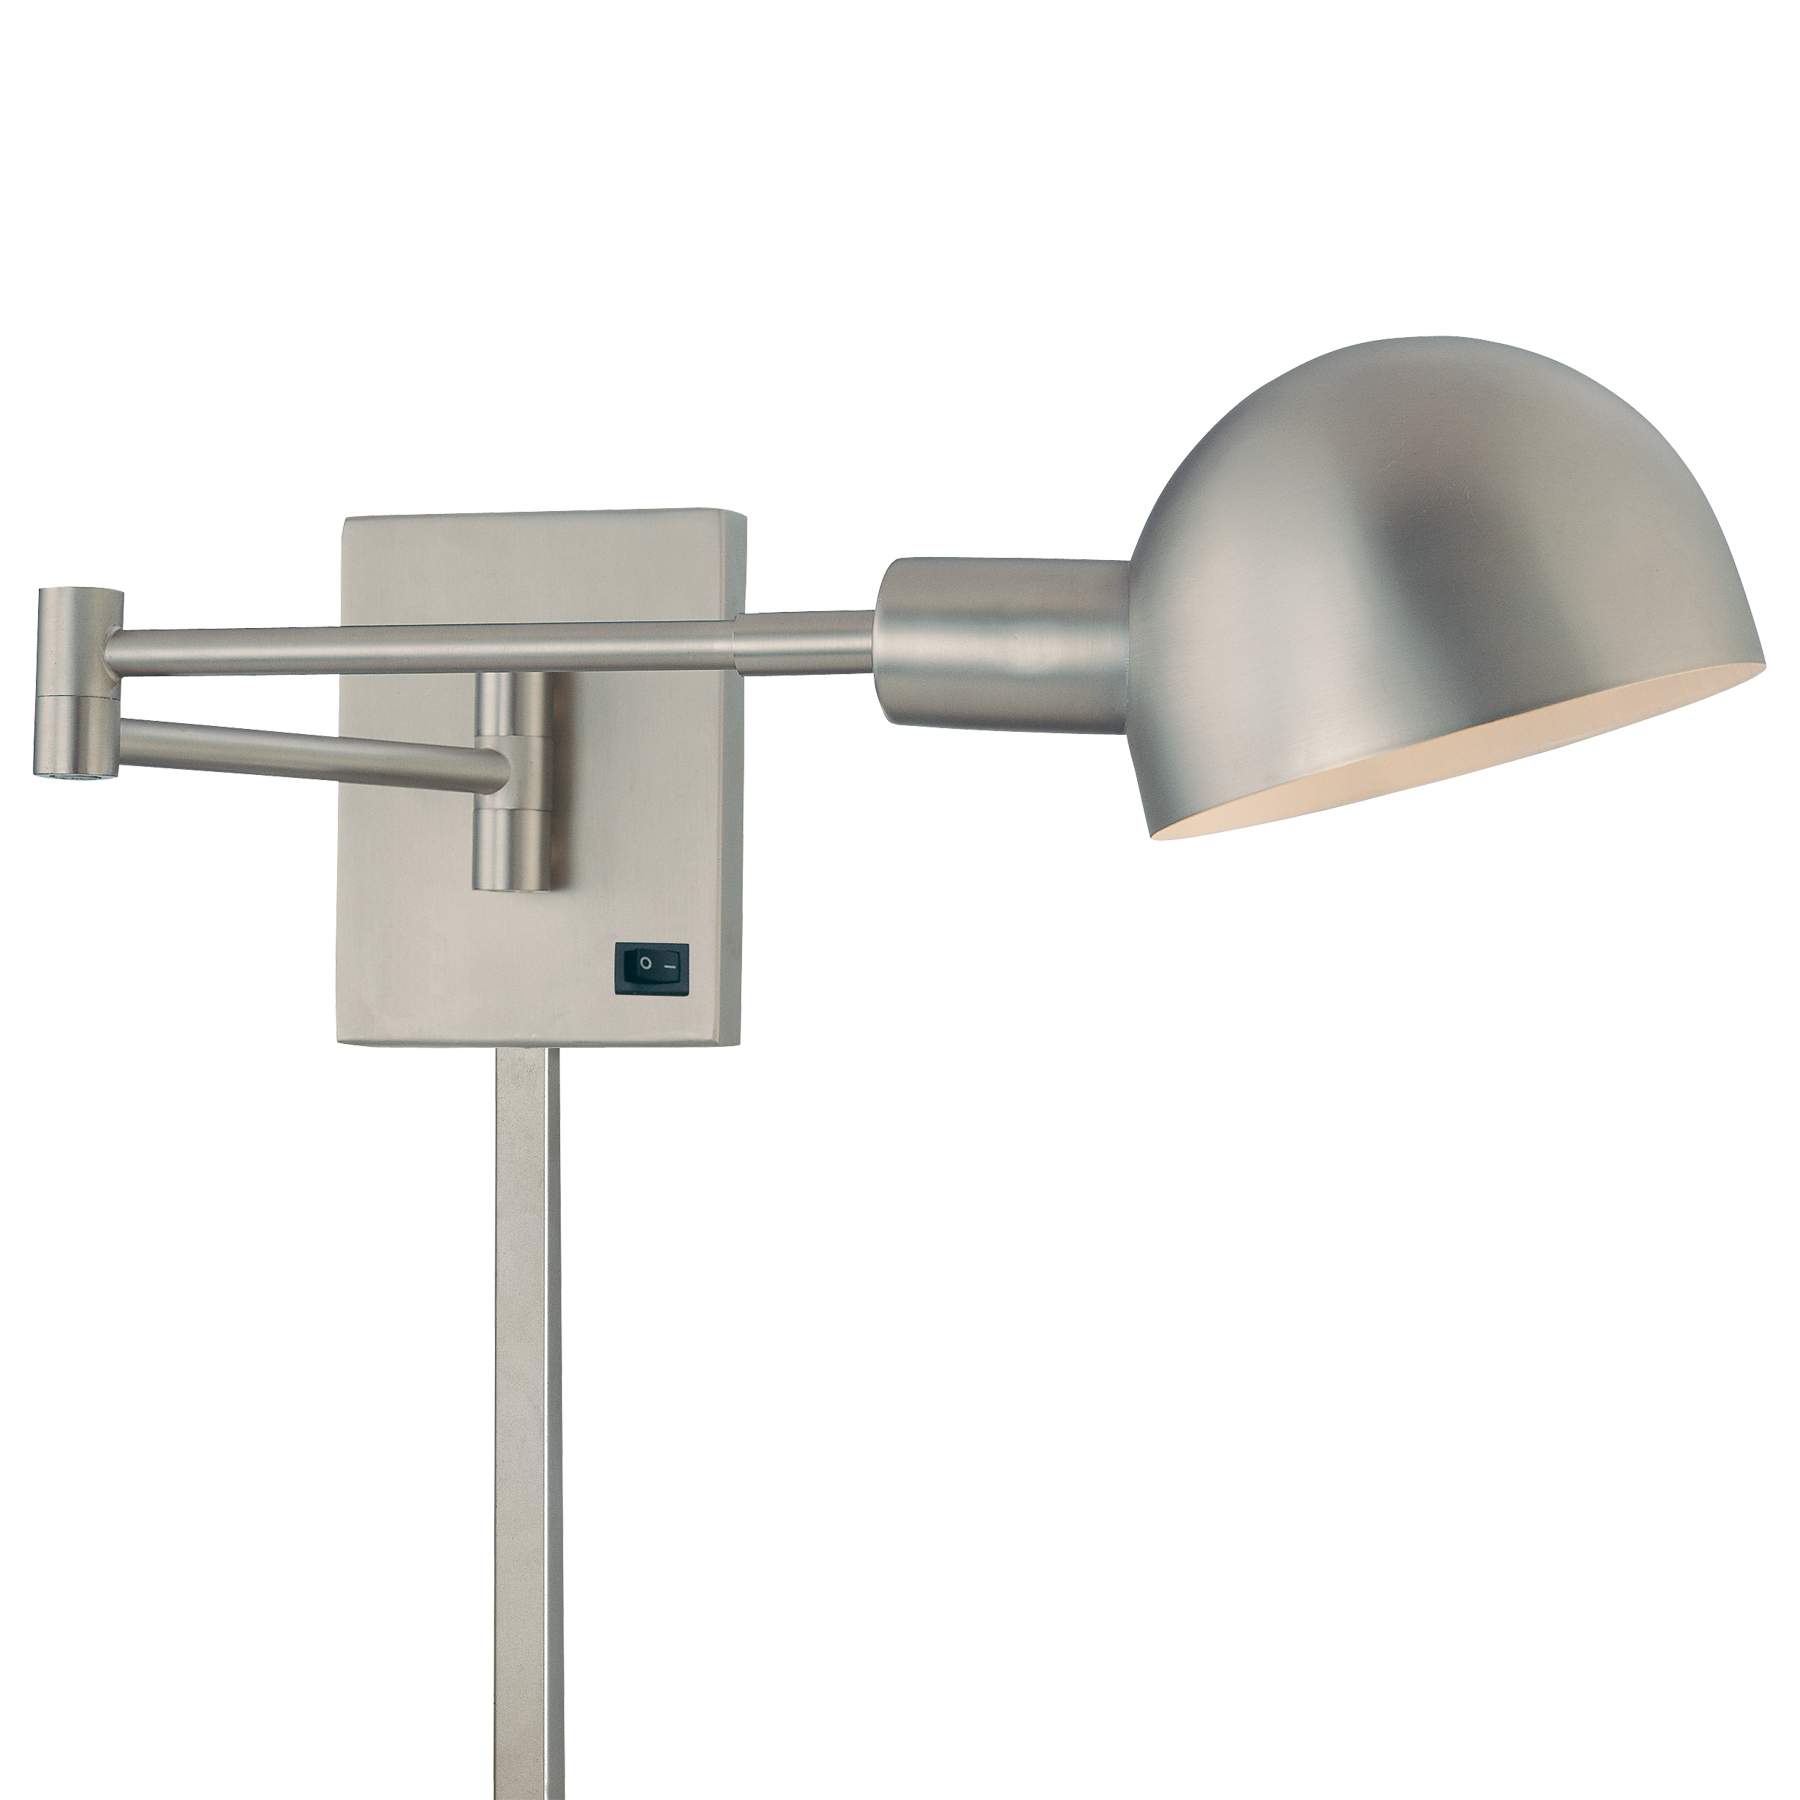 Modern Swing Arm Wall Lamp P3 Swing Arm Wall Lamp By George Kovacs P600 3 603